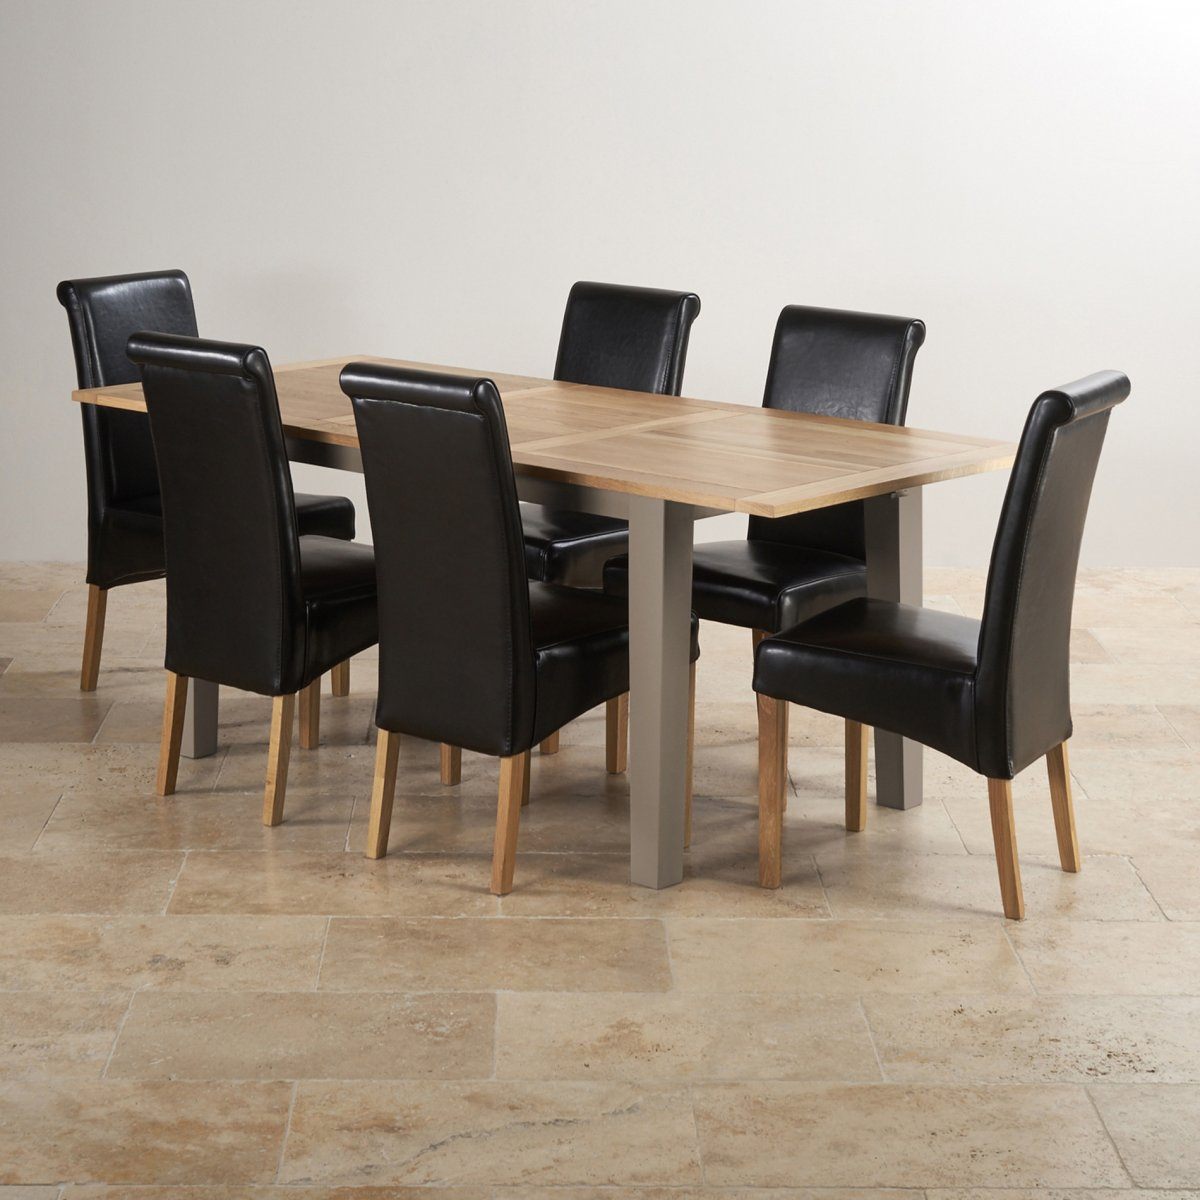 Light Oak Dining Room Table And Chairs: Painted Table In Acacia + 6 Leather